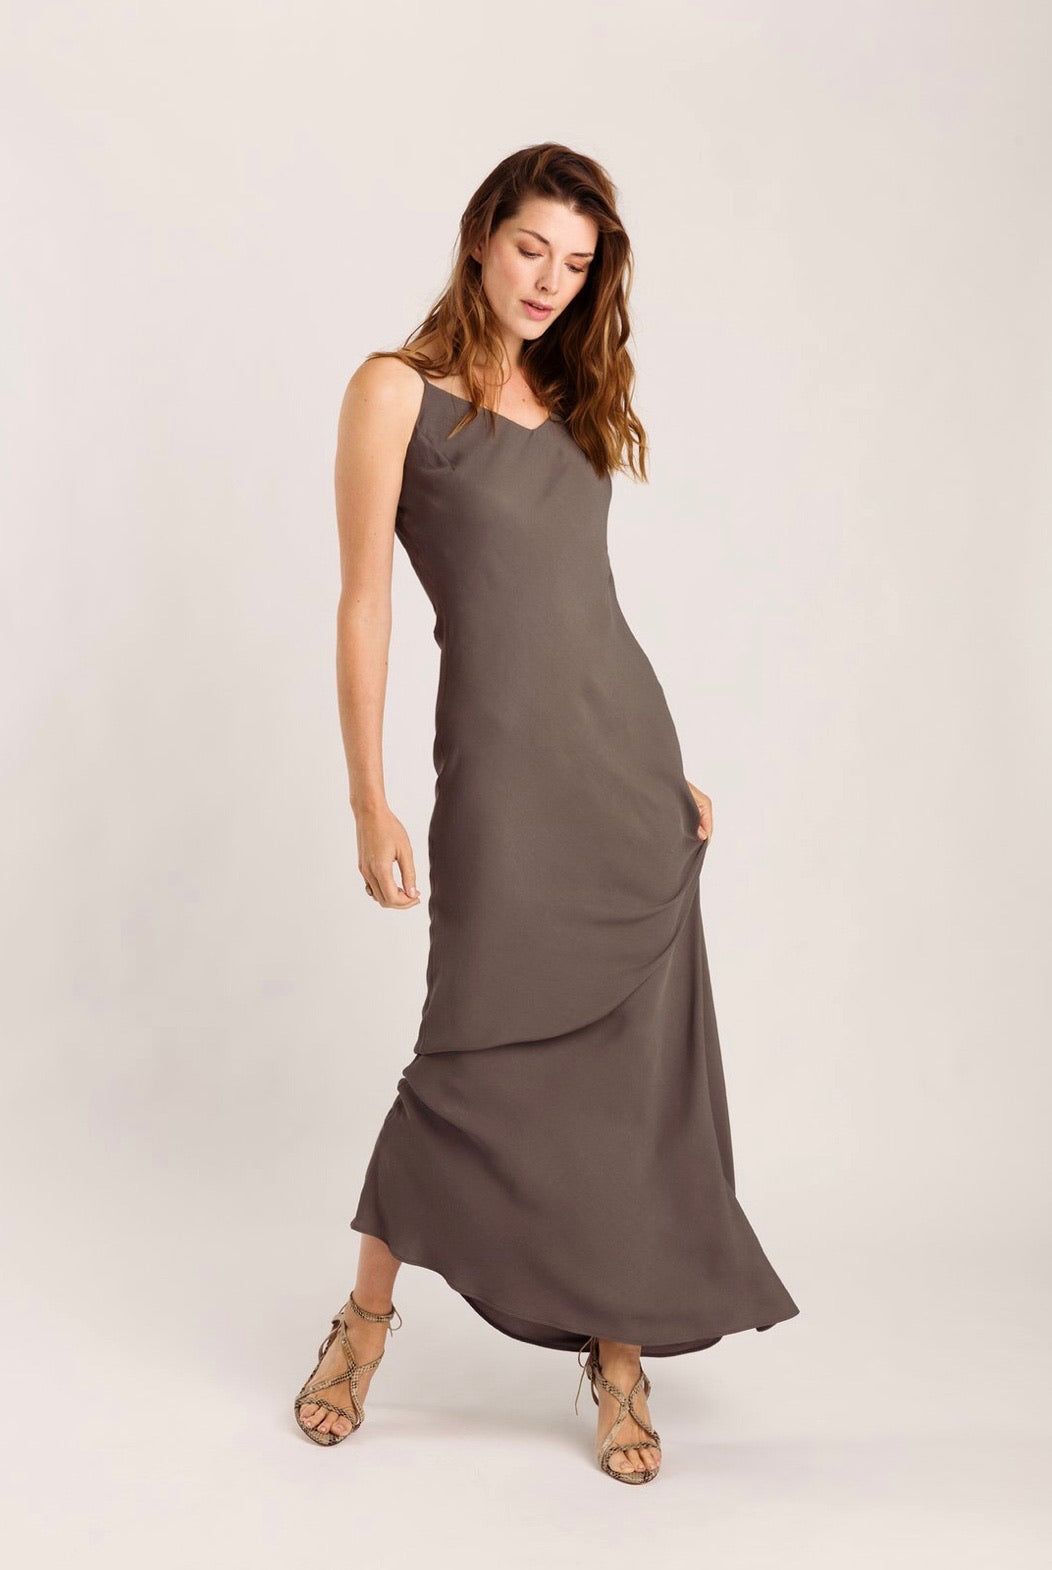 Wearable Stories Elise Dress anthracite